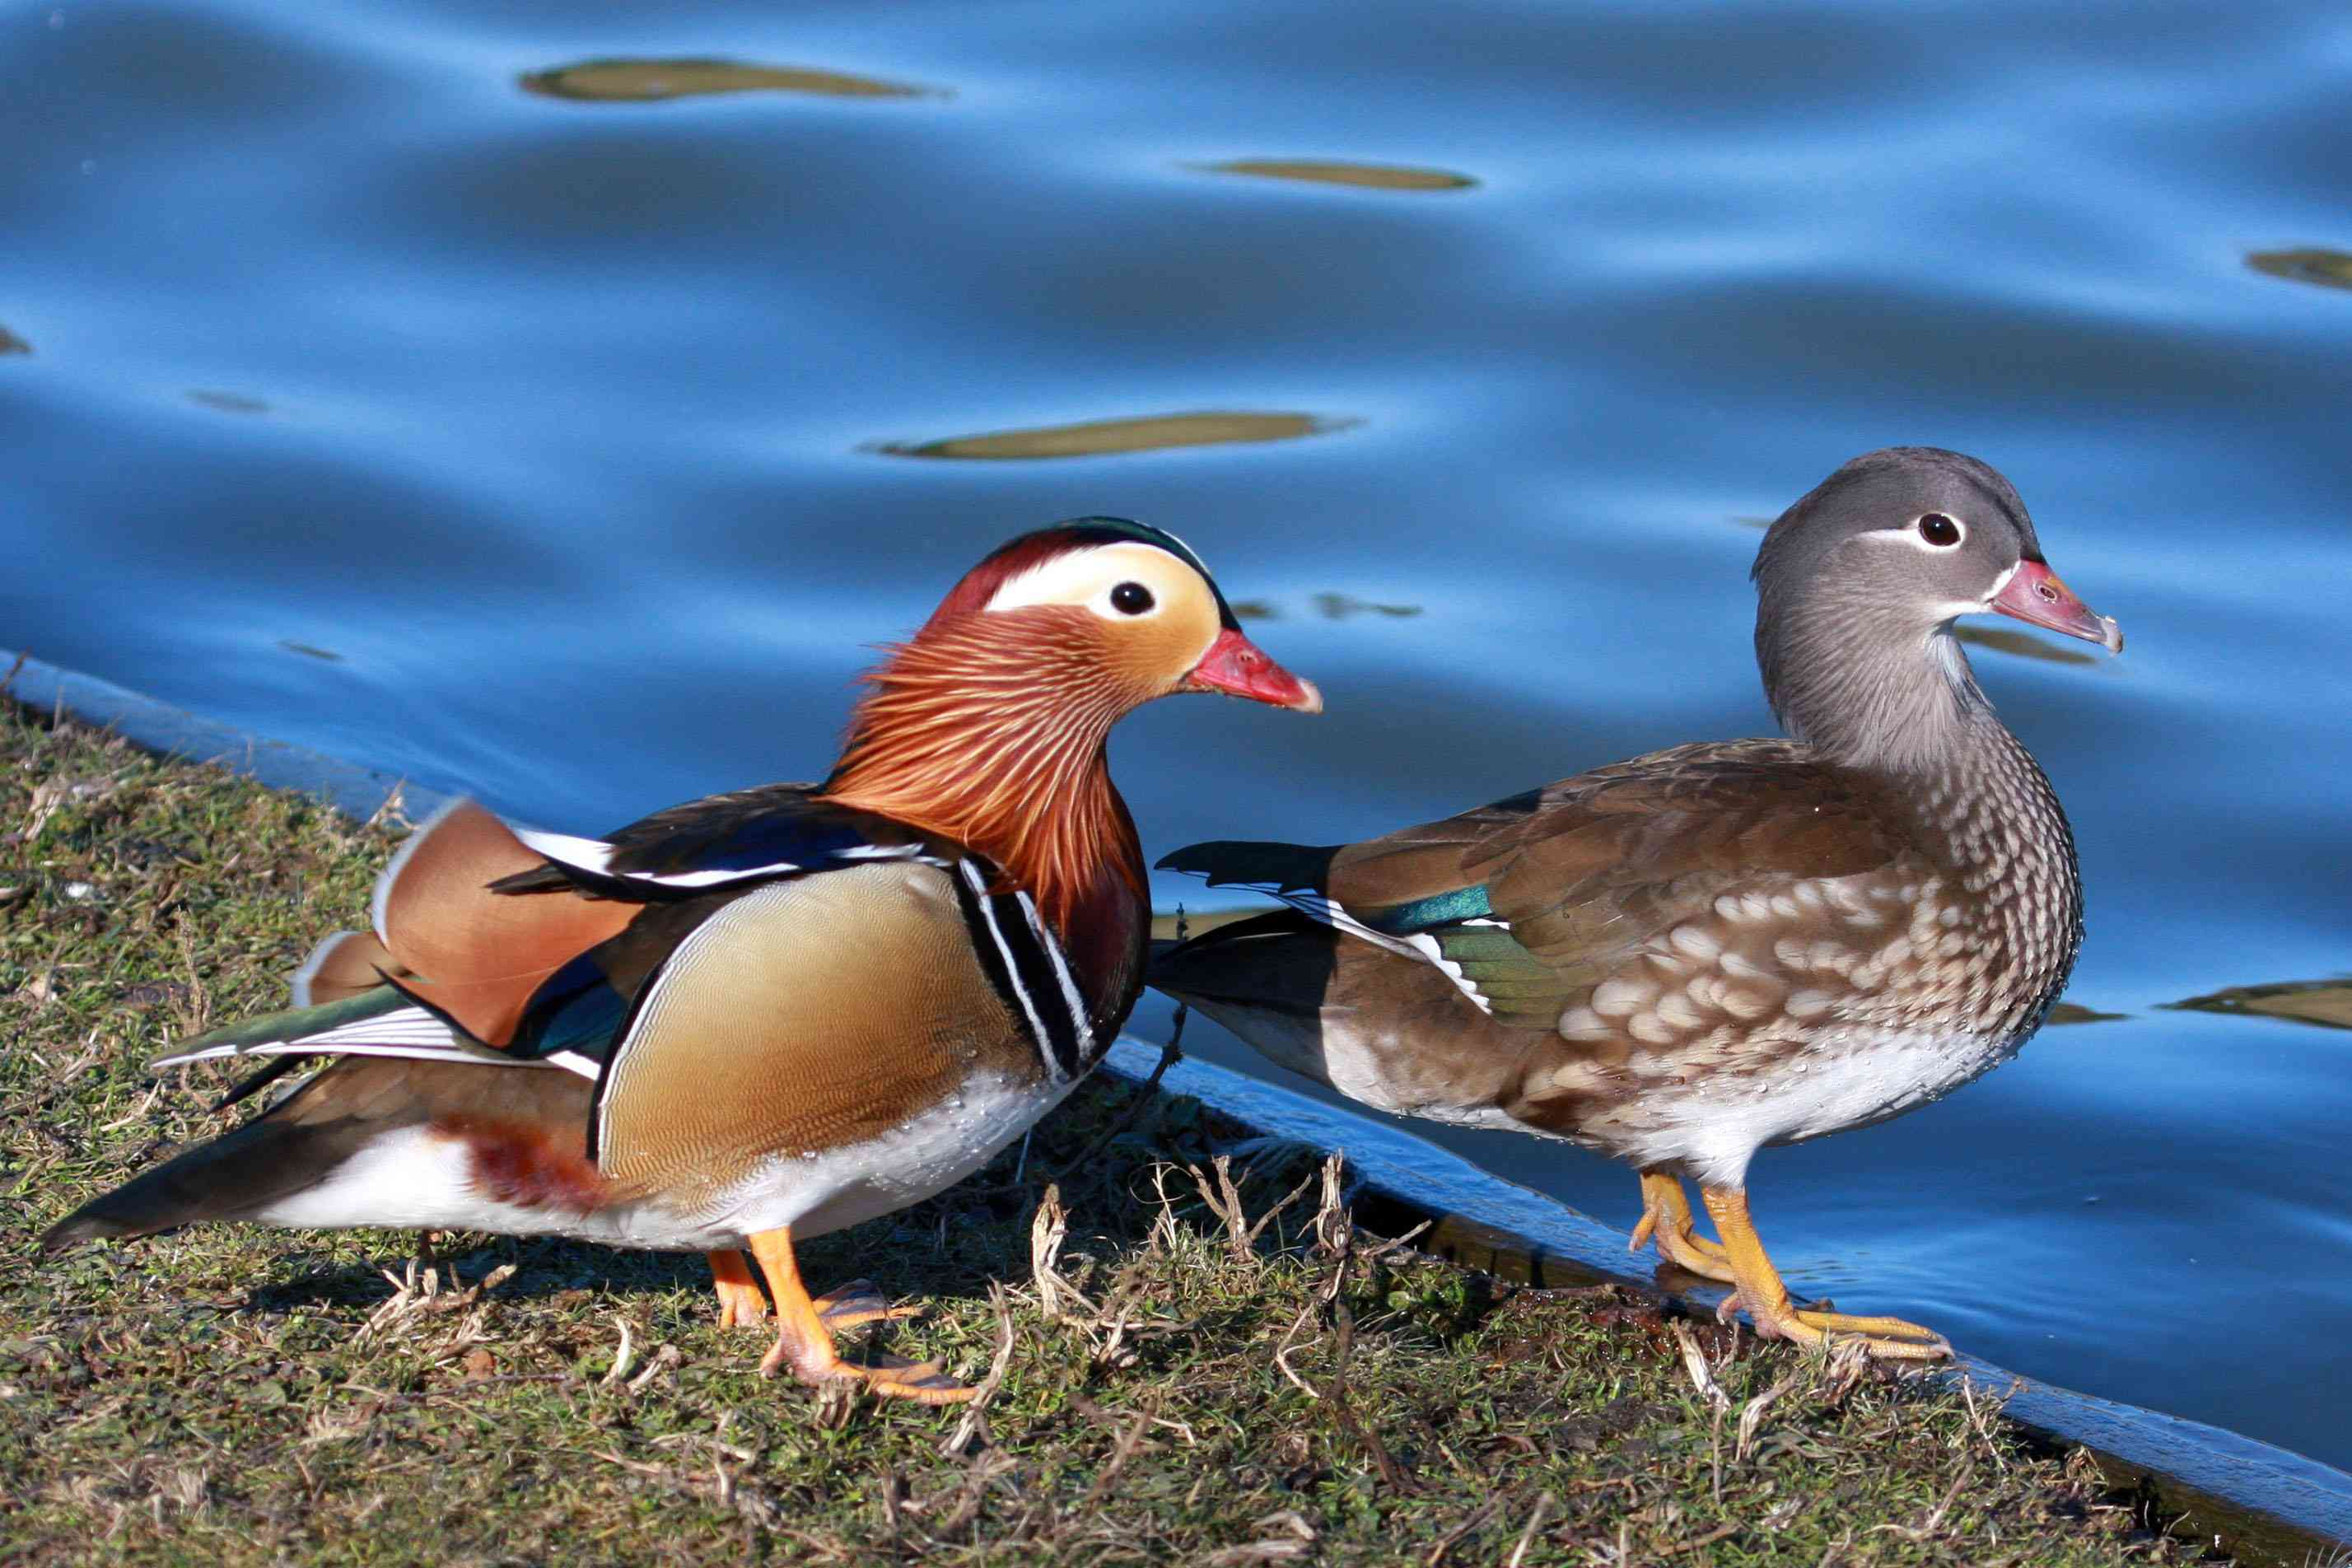 colorful male mandarin duck and gray female standing on edge of lake